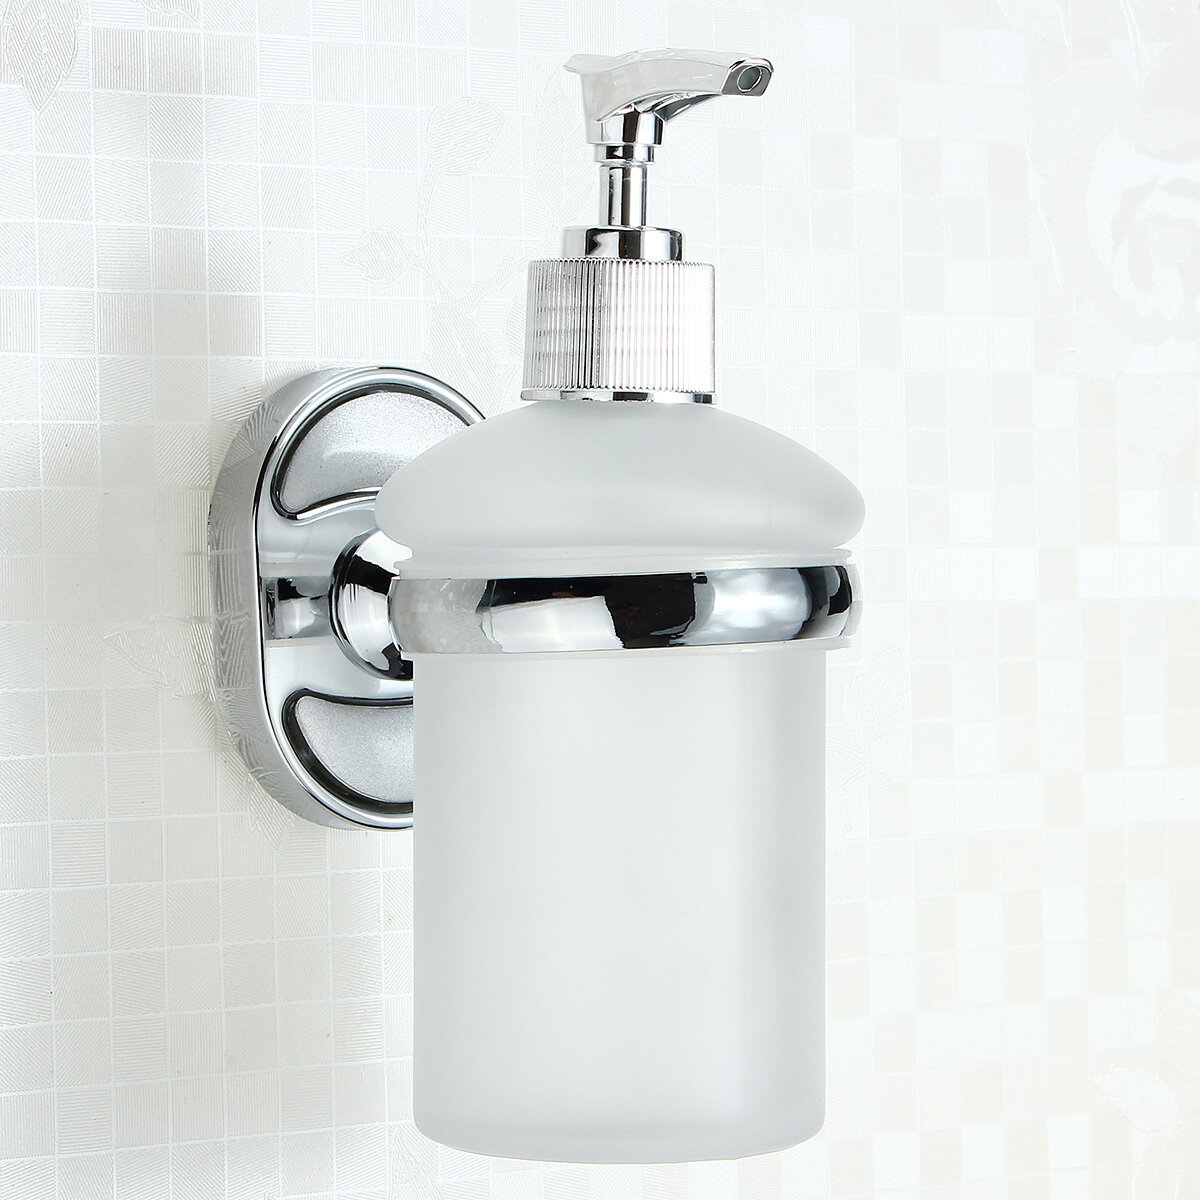 Soap And Shampoo Dispenser Stainless Steel Wall Mounted Soap Dispenser Holder Shampoo Bottle Frosted Glass